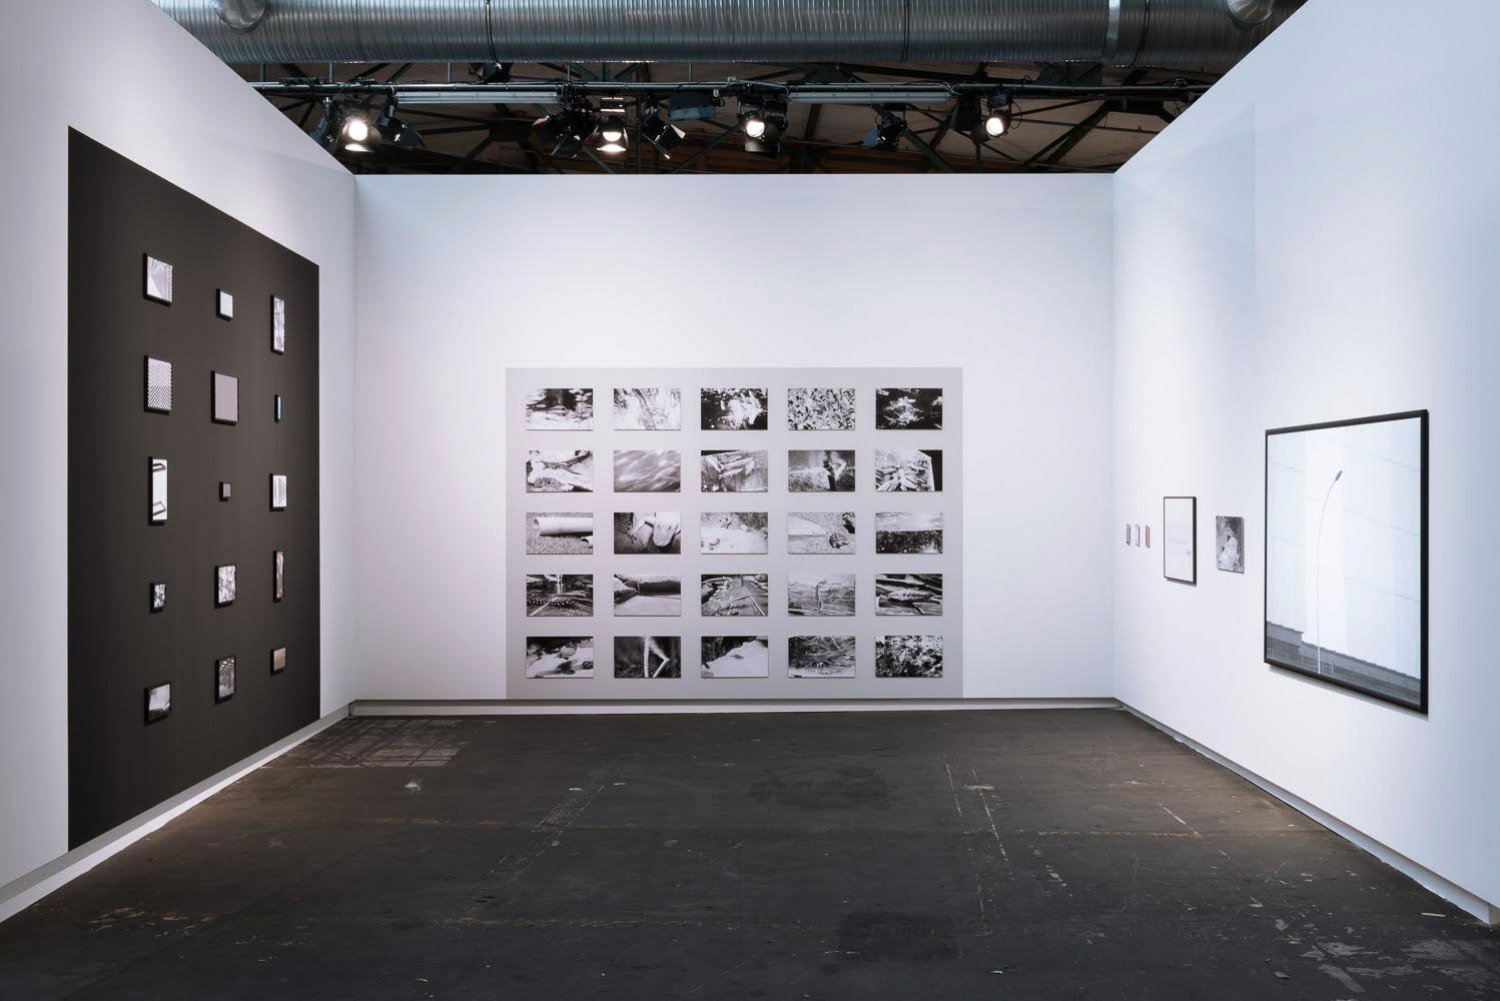 Sean Snyder 1.618033987, 5, 25, 99, 747 Installation view at abc (art berlin contemporary)